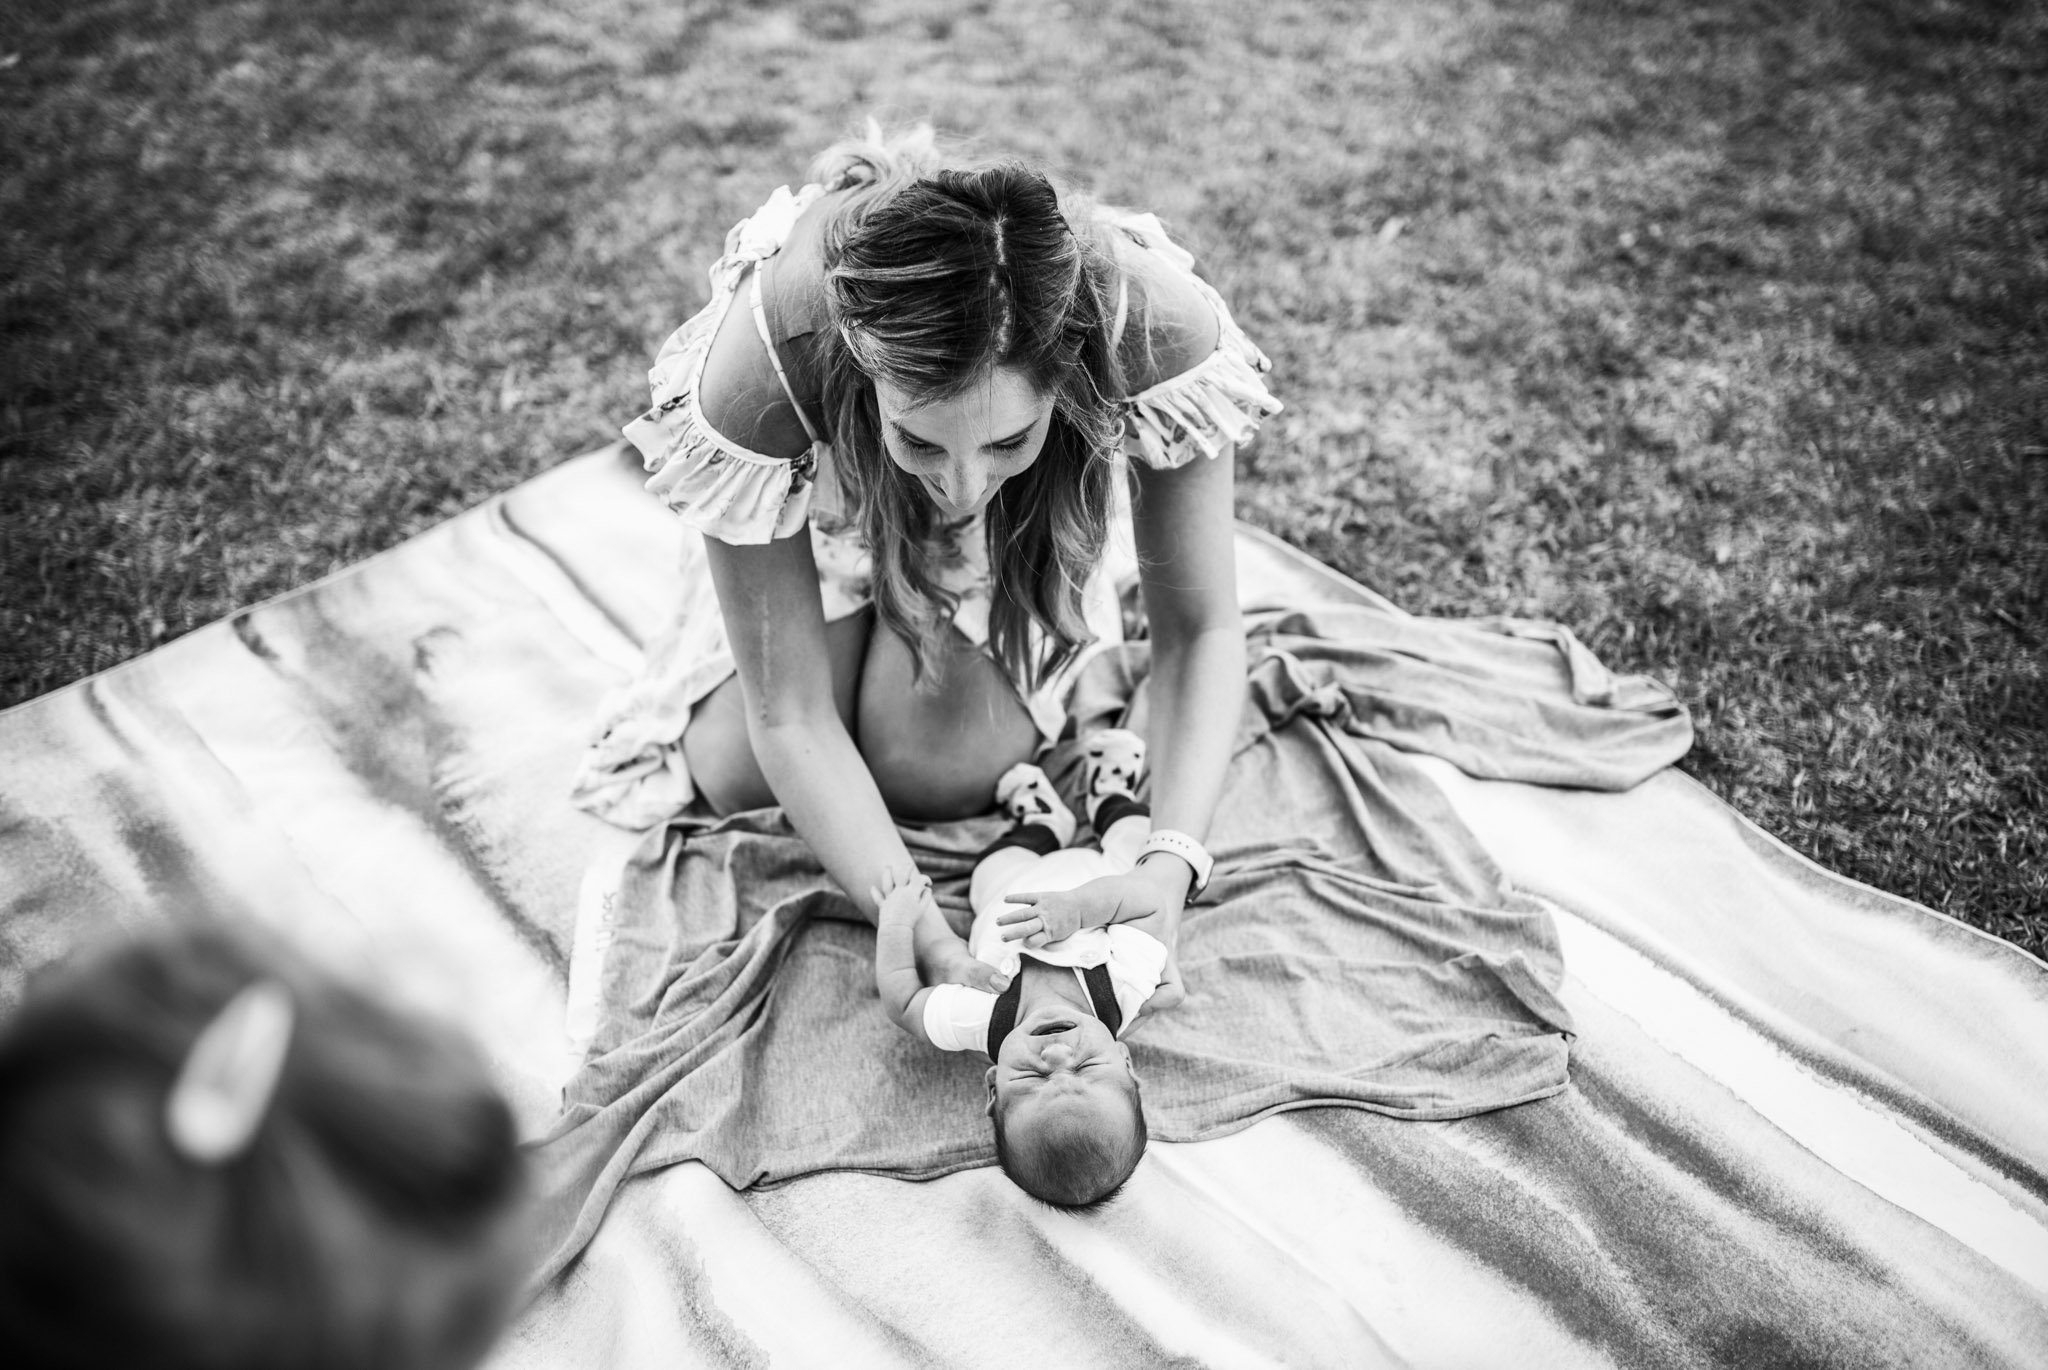 mother-wrapping-newborn-on-picnic-rug (1 of 1).jpg